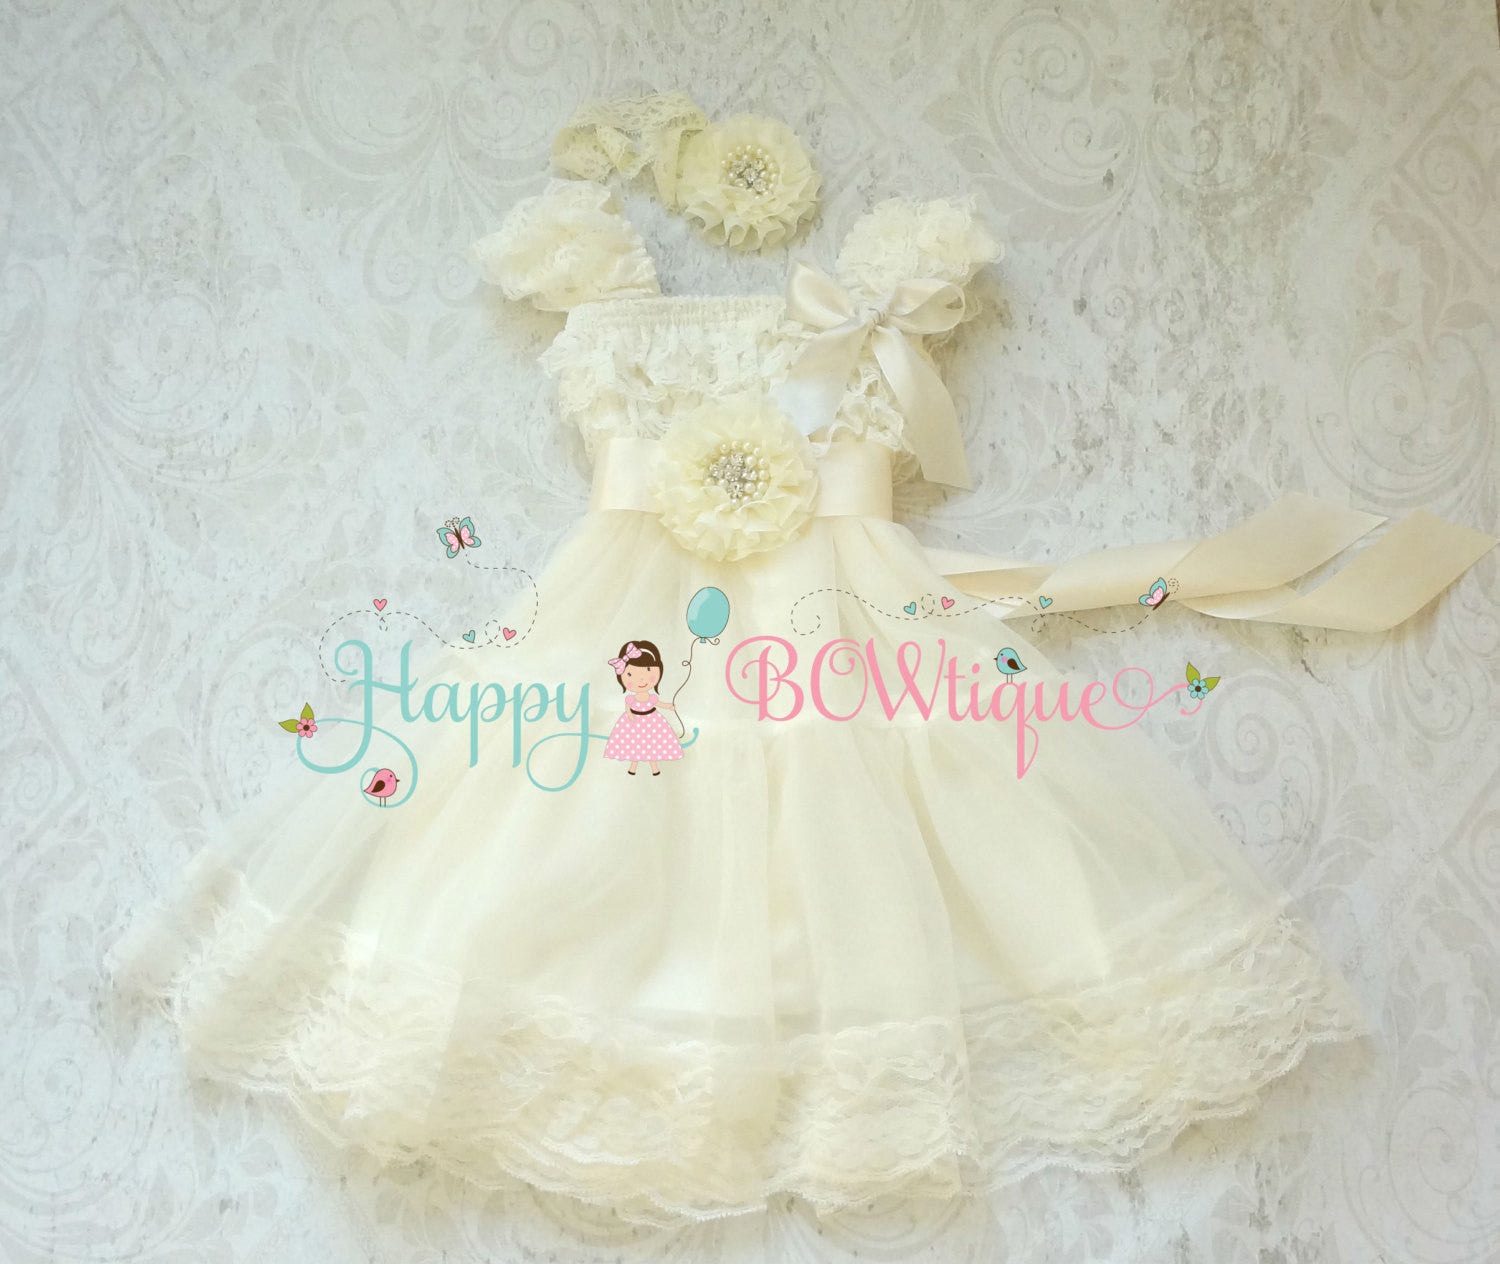 Ivory Flower girls dress/ Ivory Chiffon Lace Dress set - Happy BOWtique - children's clothing, Baby Girl clothing